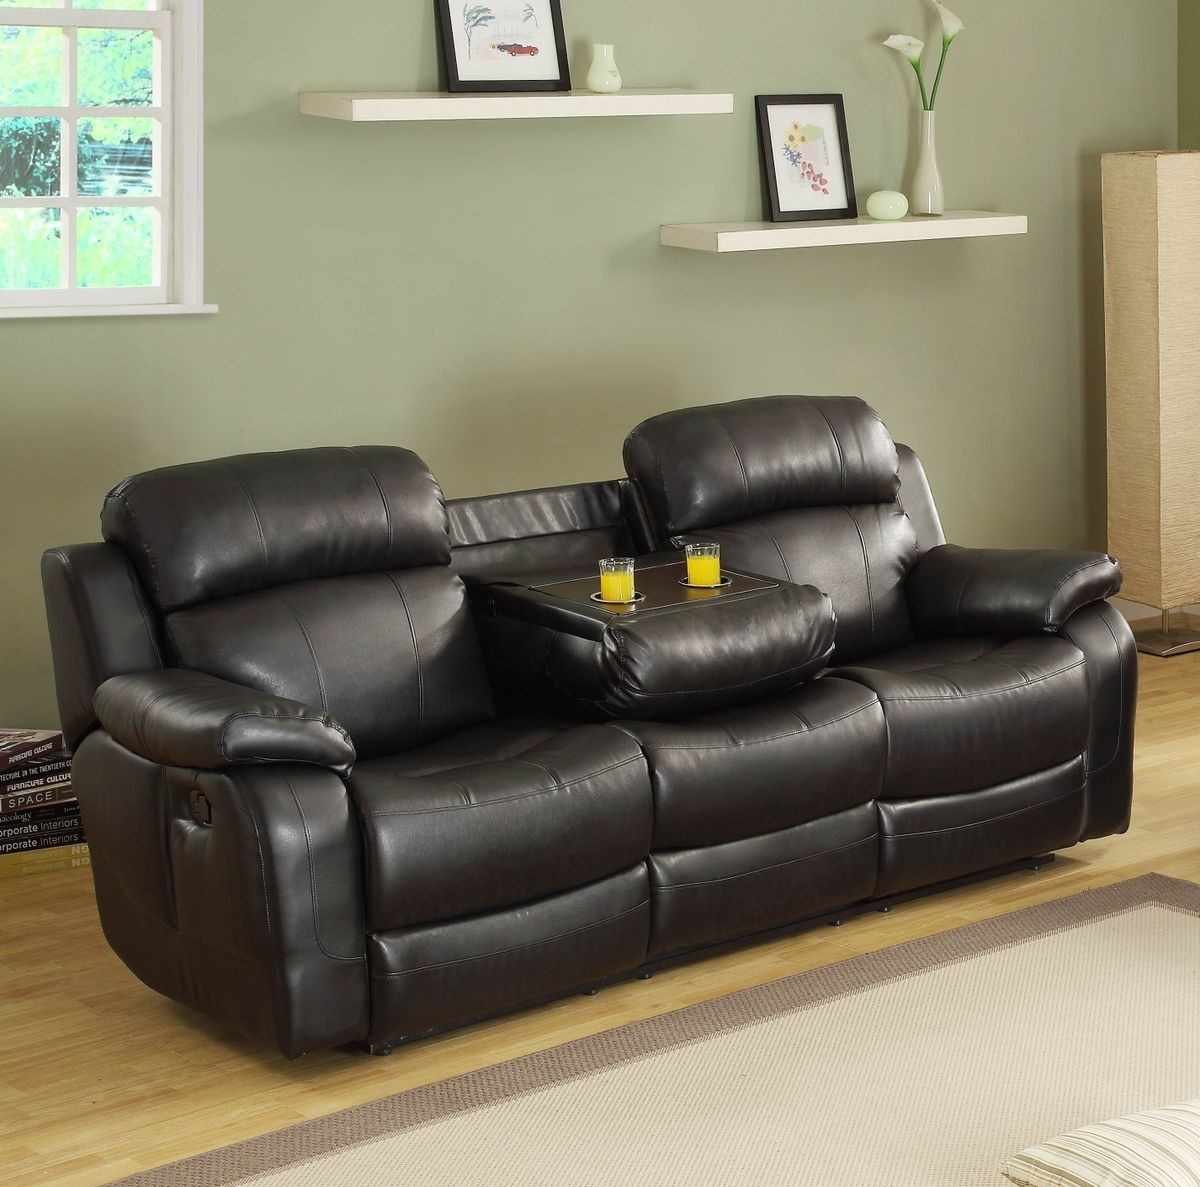 Homelegance Marille Double Reclining Sofa w Center Drop  : 9724blk 3 from marjenofchicago.com size 1200 x 1187 jpeg 233kB